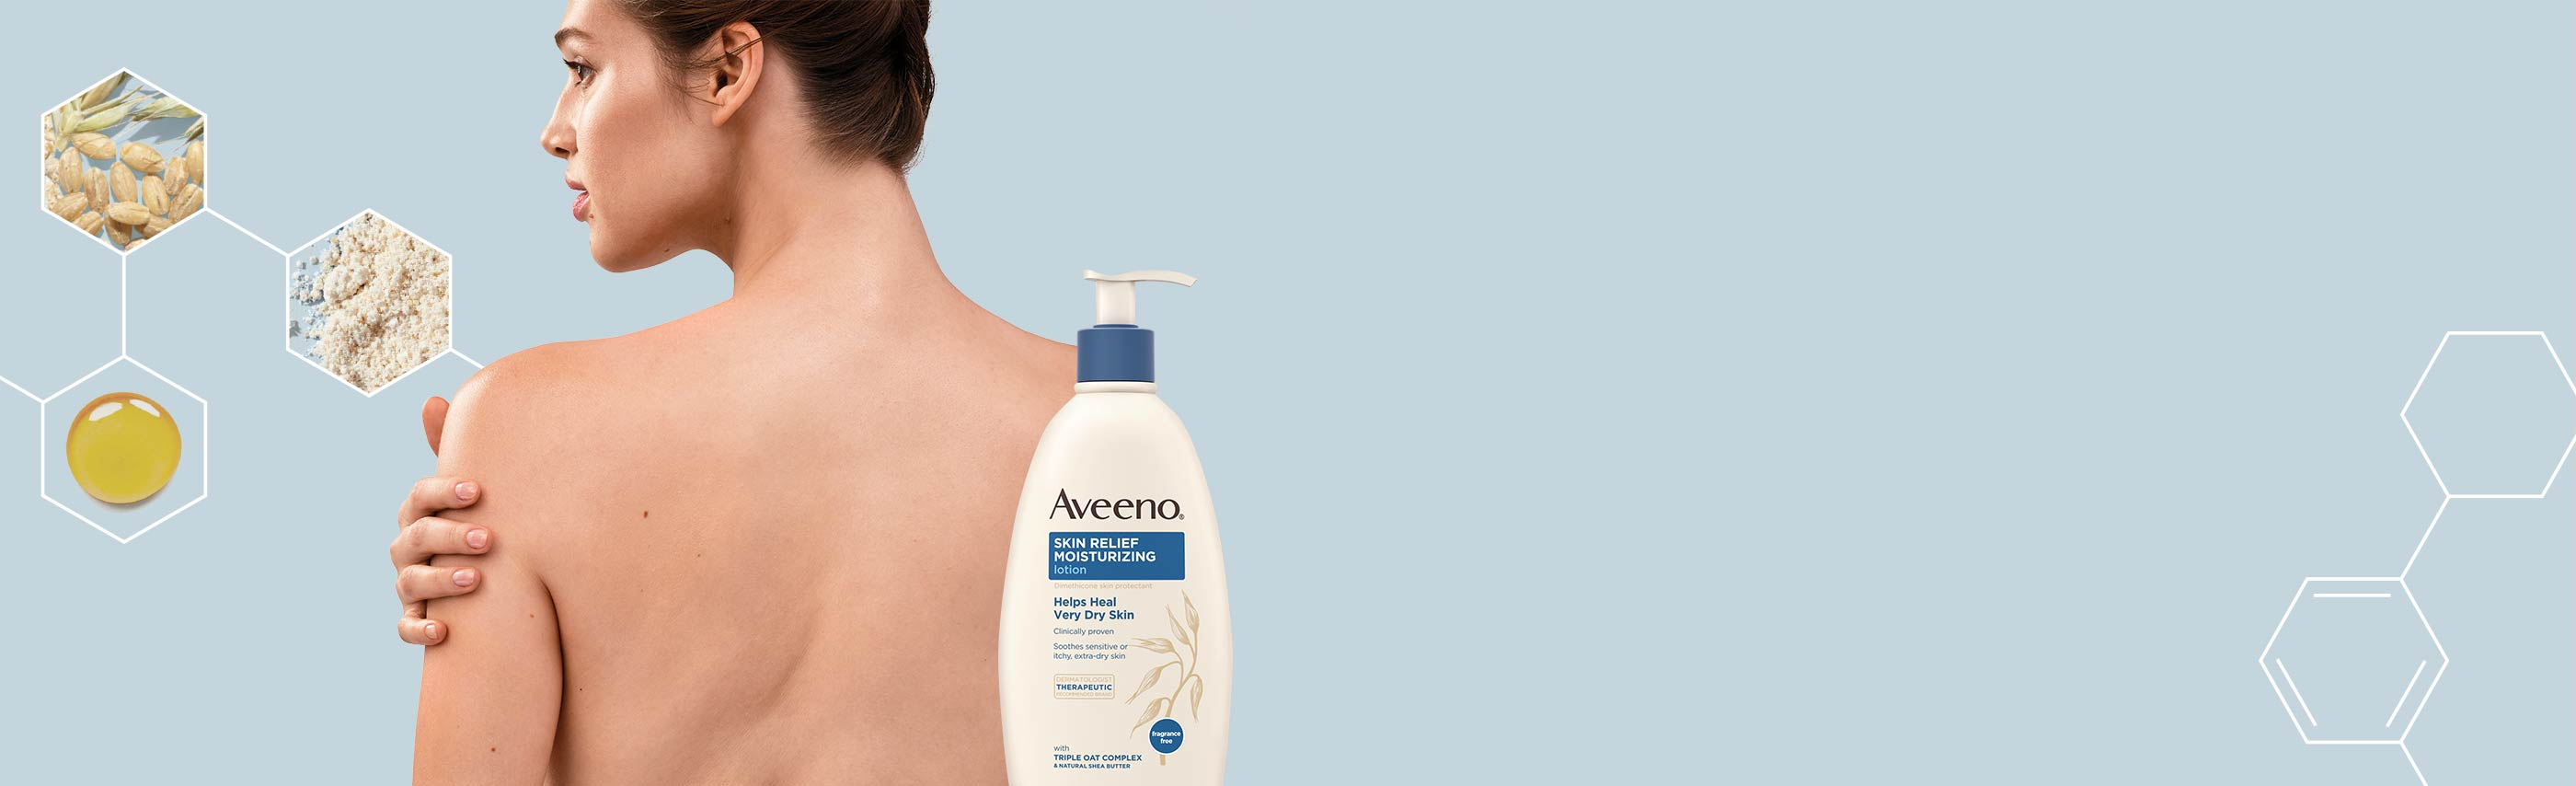 woman using aveeno skin relief moisturizing lotion with oat and shea butter for sensitive, very dry skin